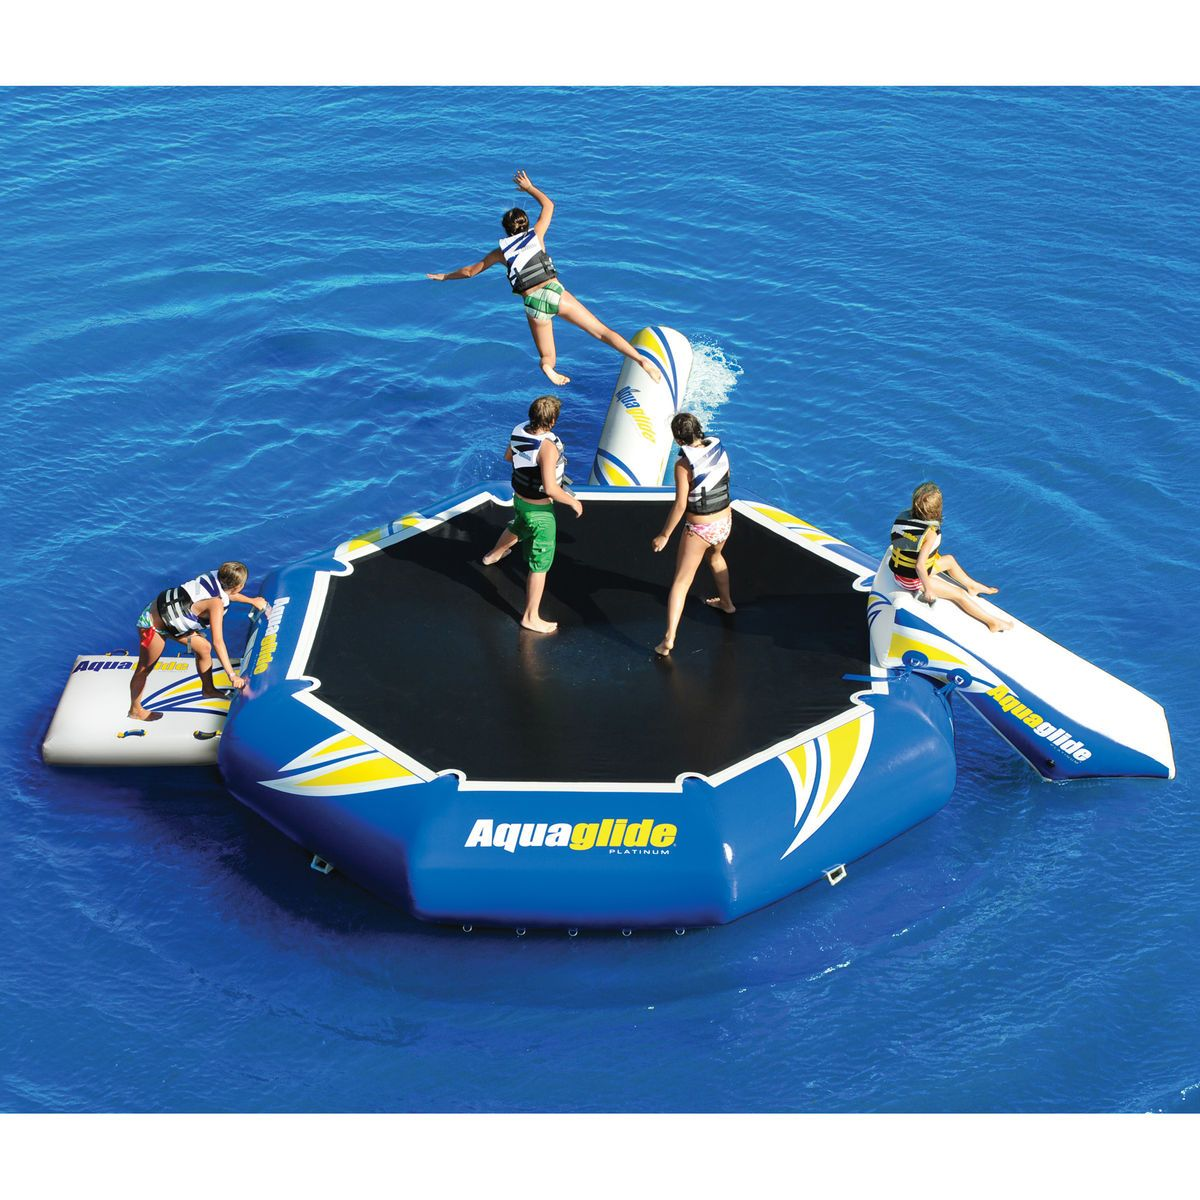 Aquaglide Platinum Rebound Aquapark 12 Bouncer Set